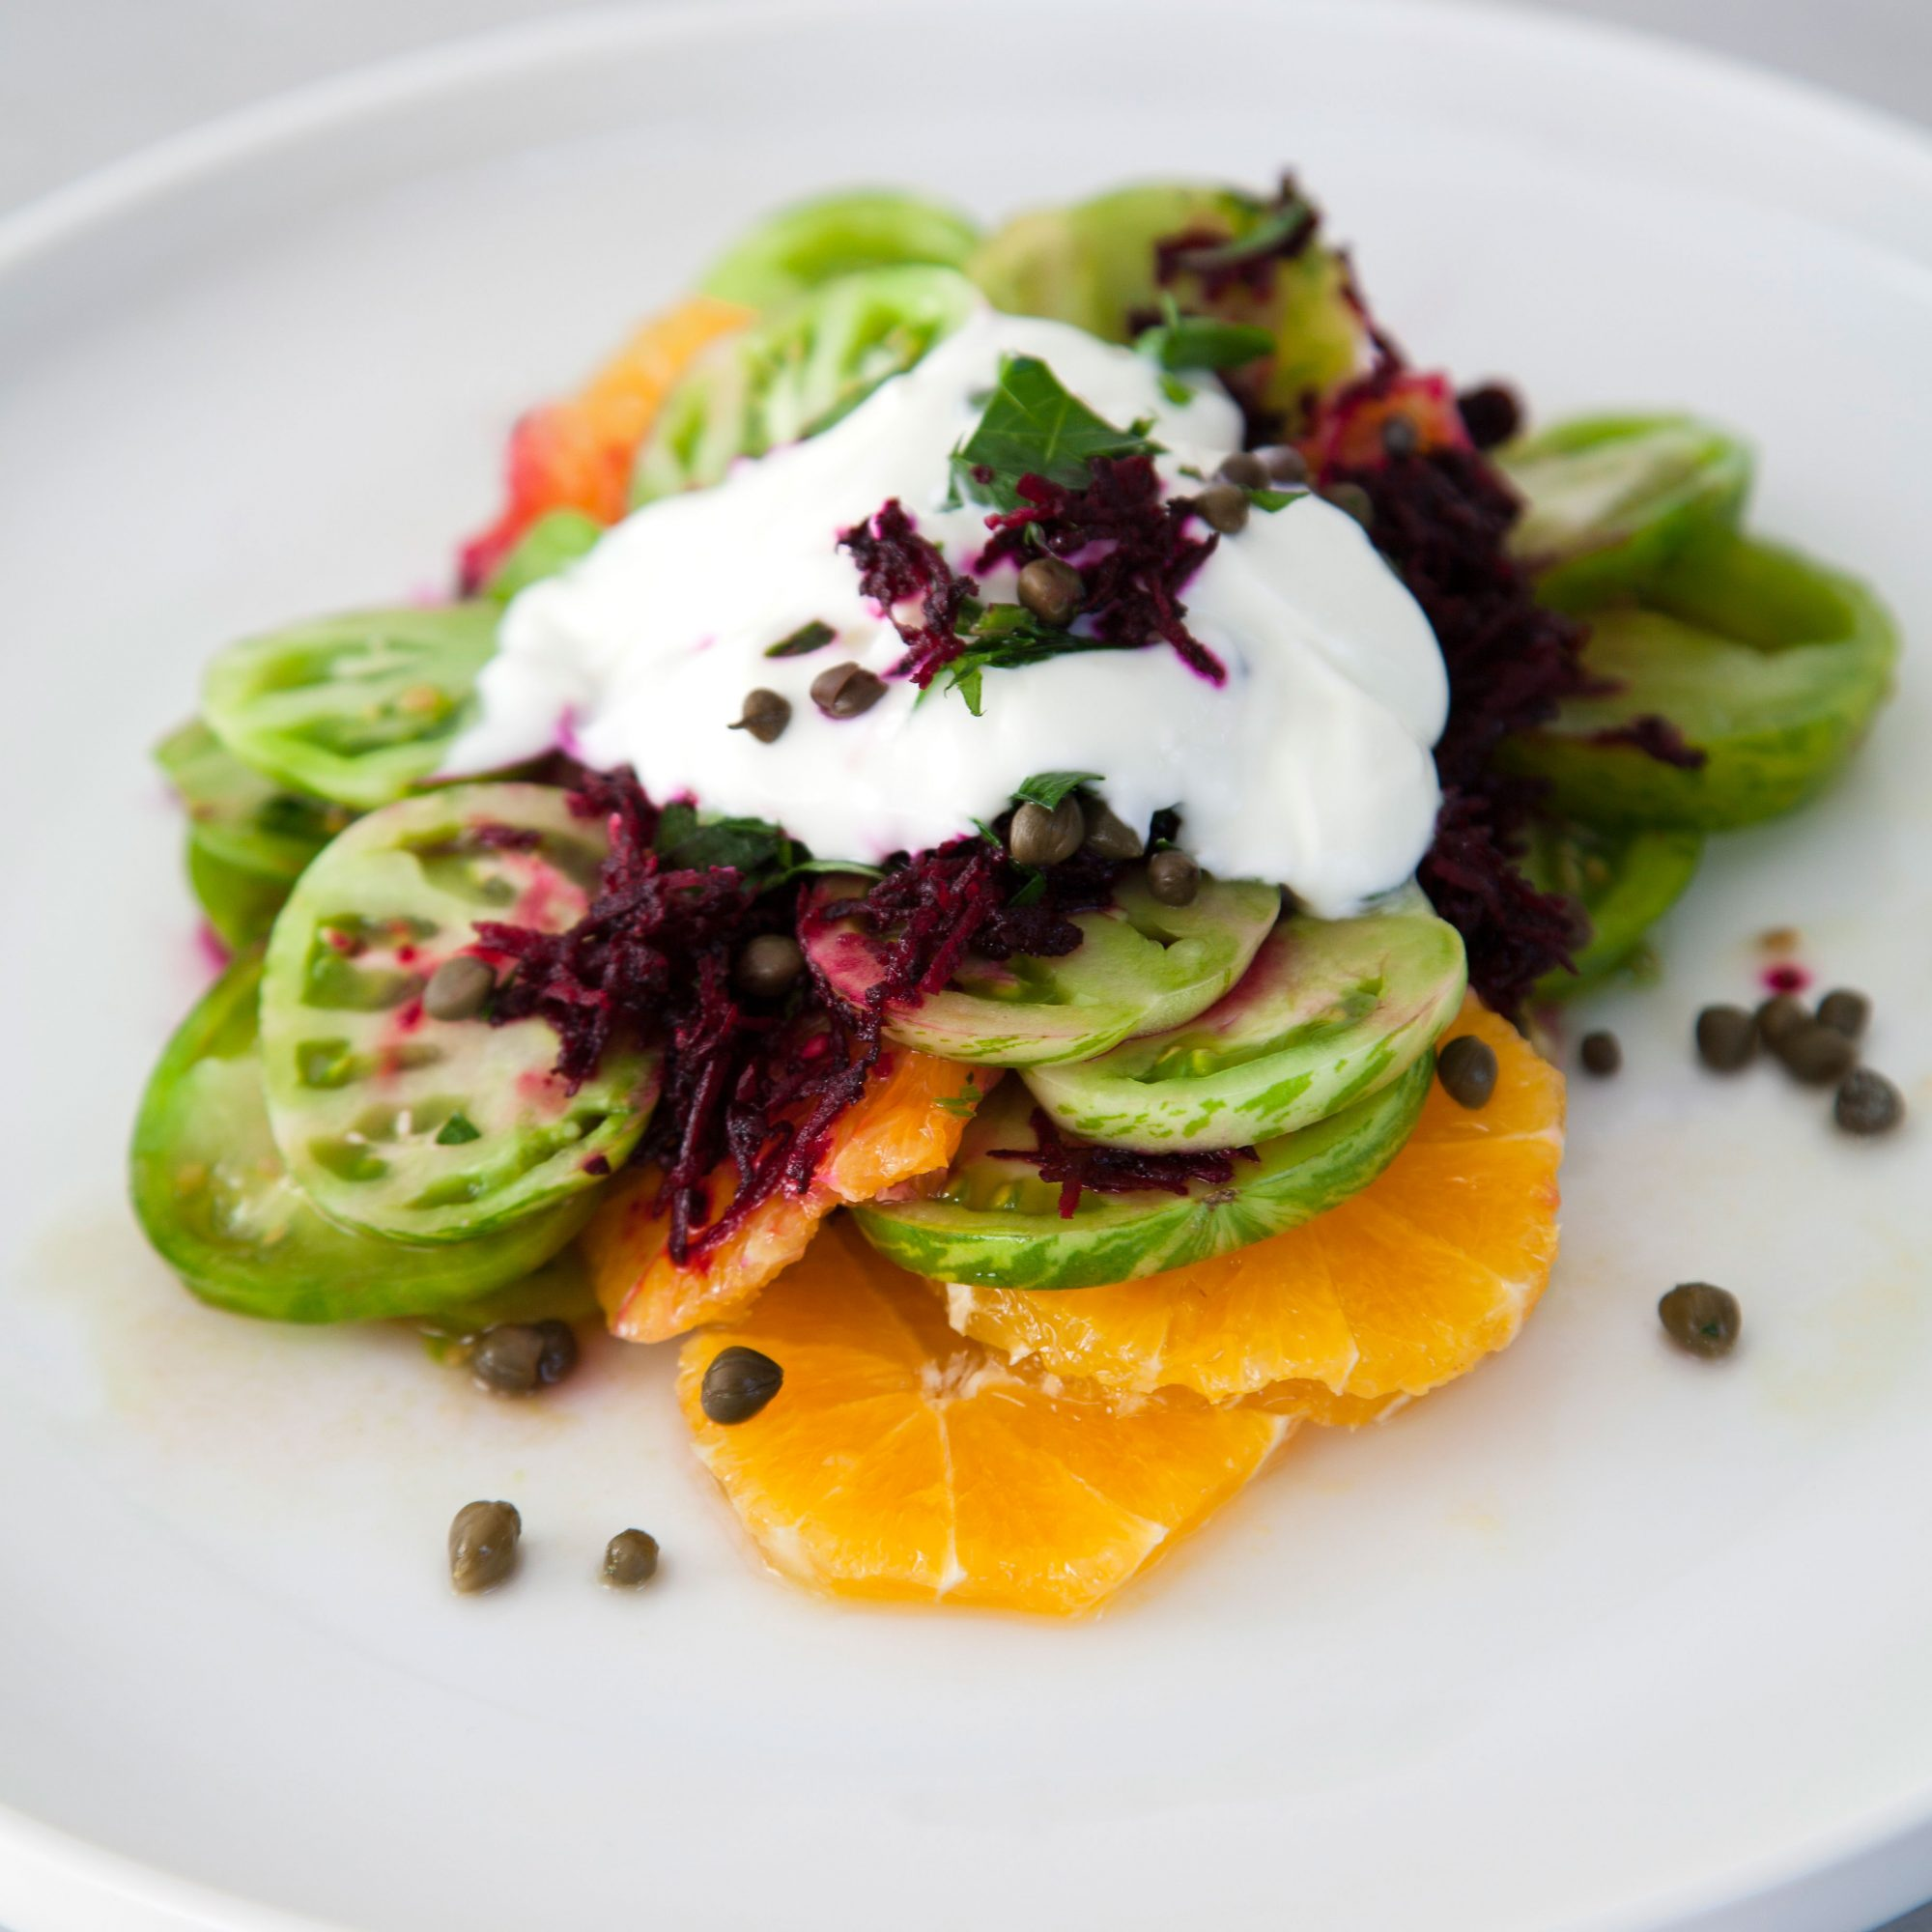 Green Tomato-Citrus Stacks with Beet-Stained Yogurt